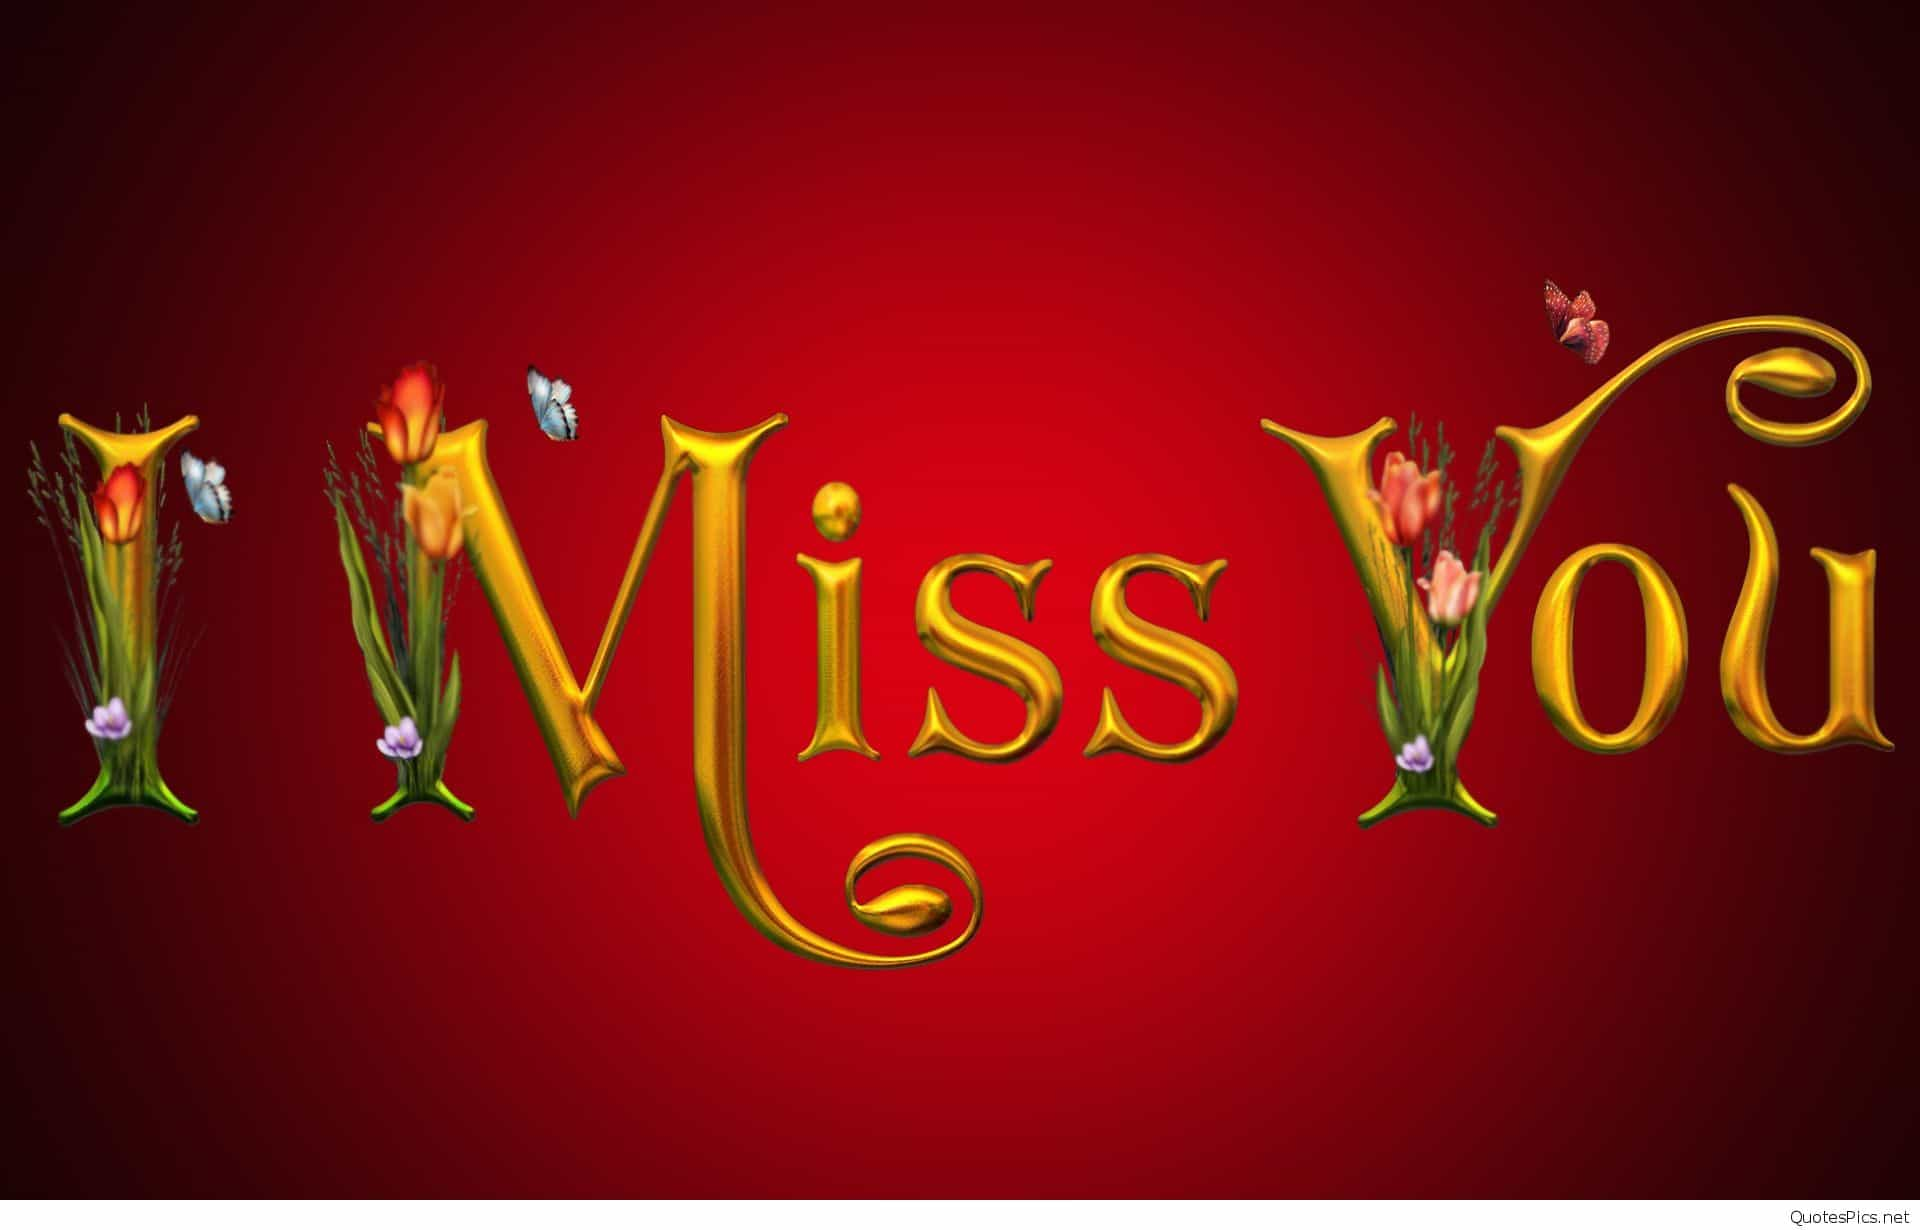 Miss you images wallpaper download ilove messages miss you images wallpaper download kristyandbryce Image collections